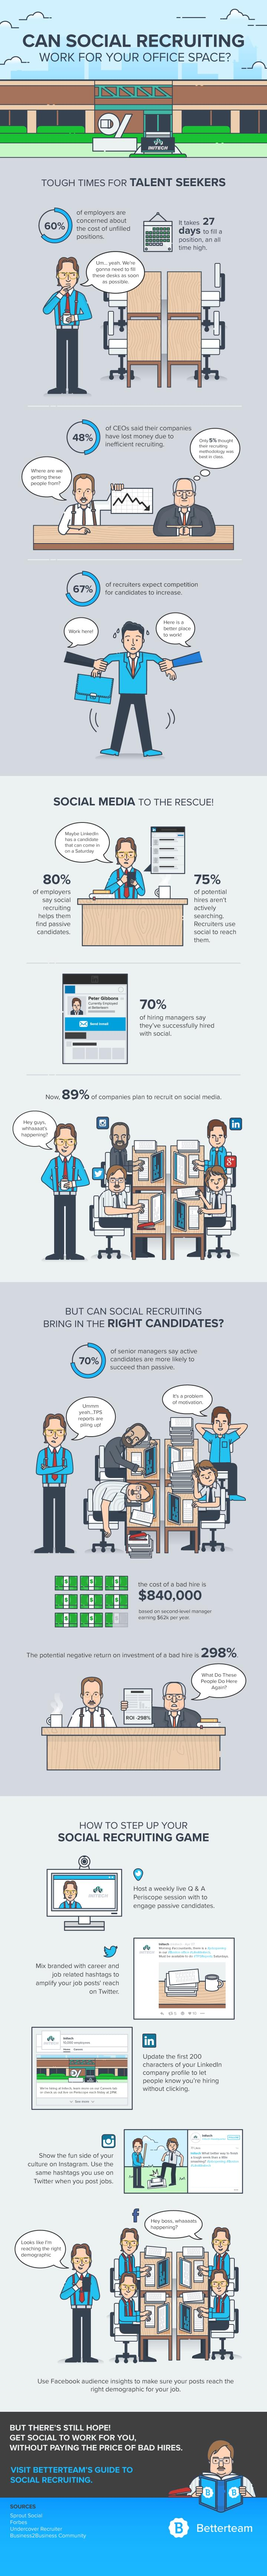 social recruiting infographic